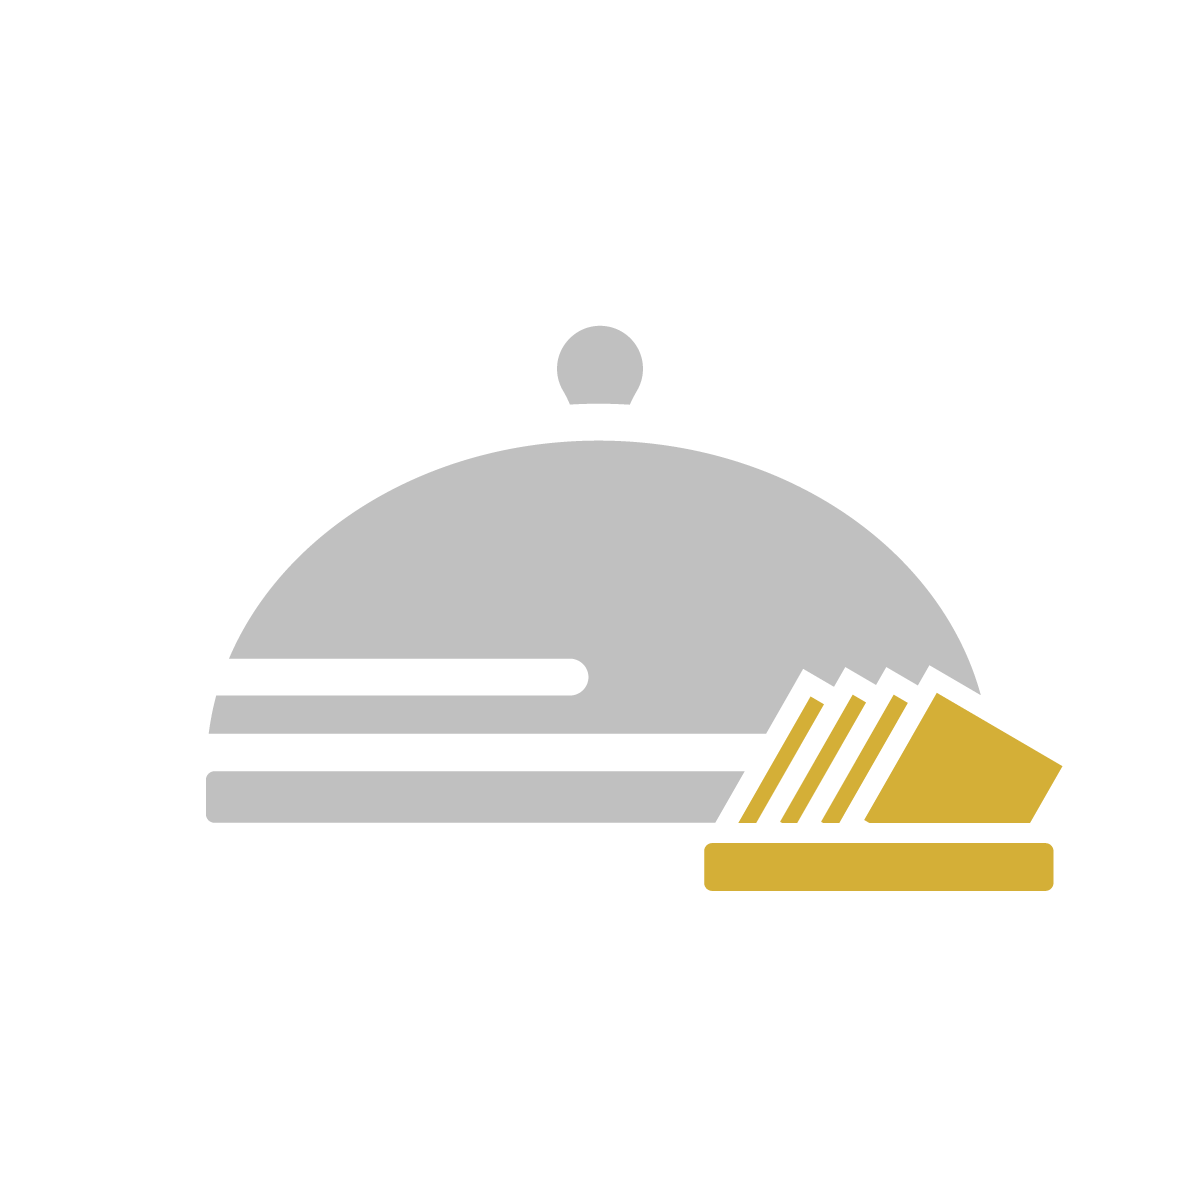 Cake-And-Dessert-Icon-Grey.png